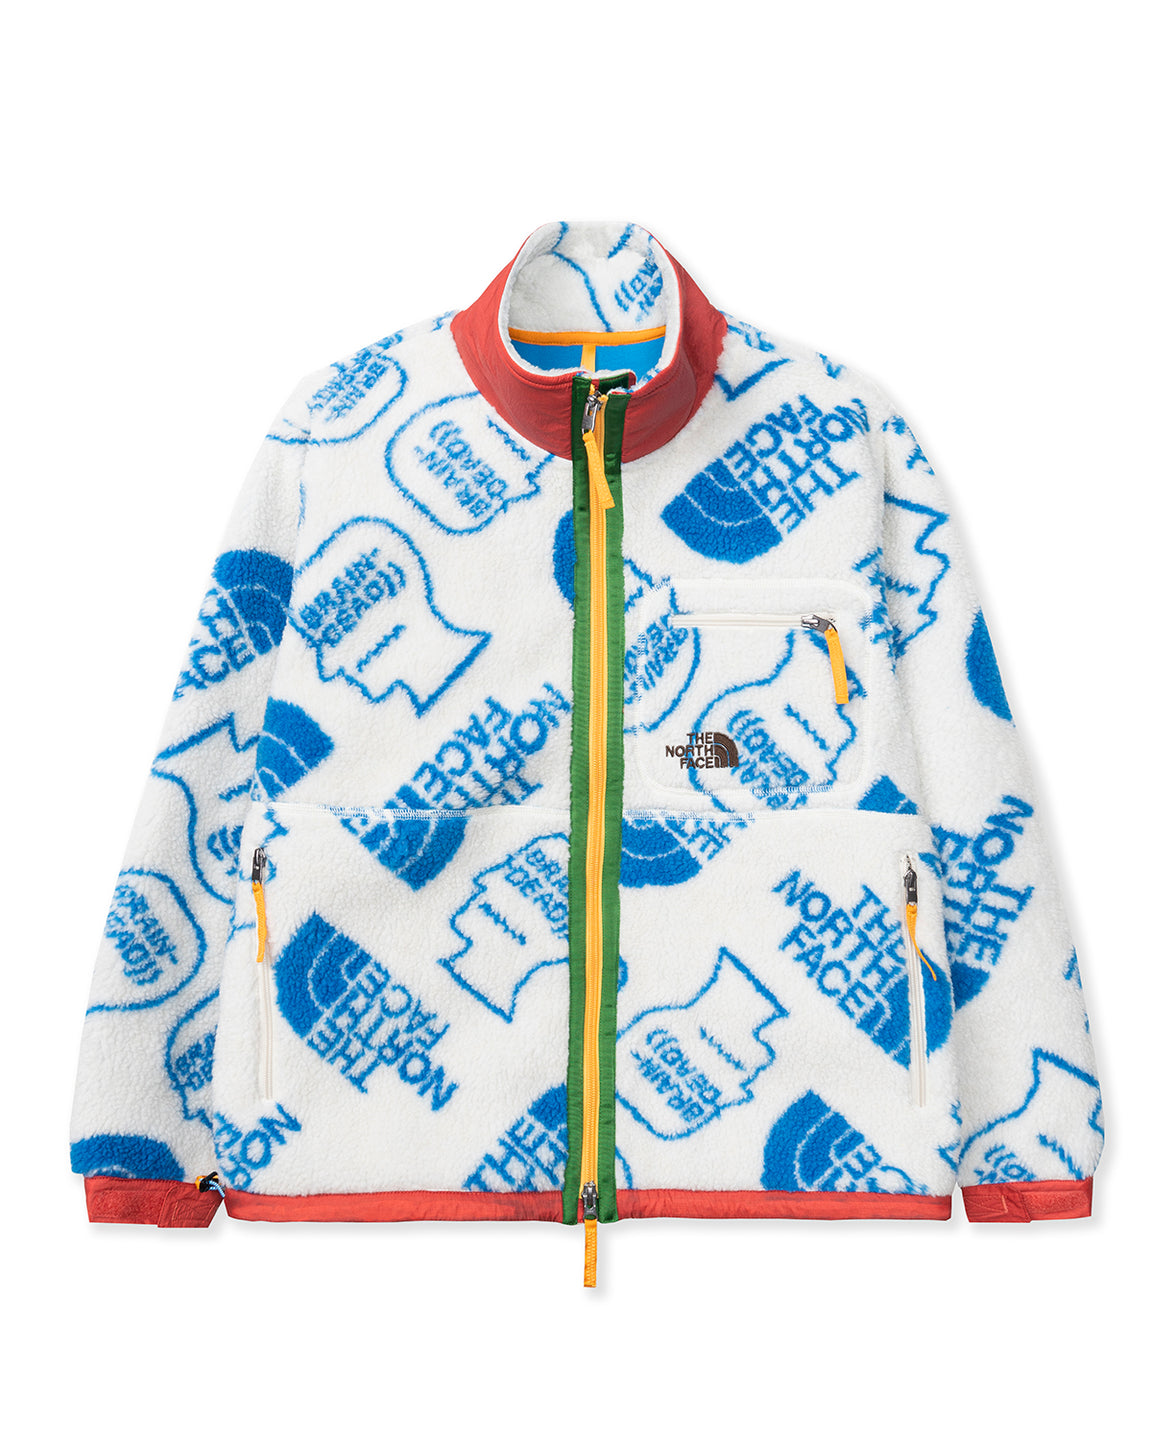 The North Face x Brain Dead Extreme Pile Full Zip Fleece - White